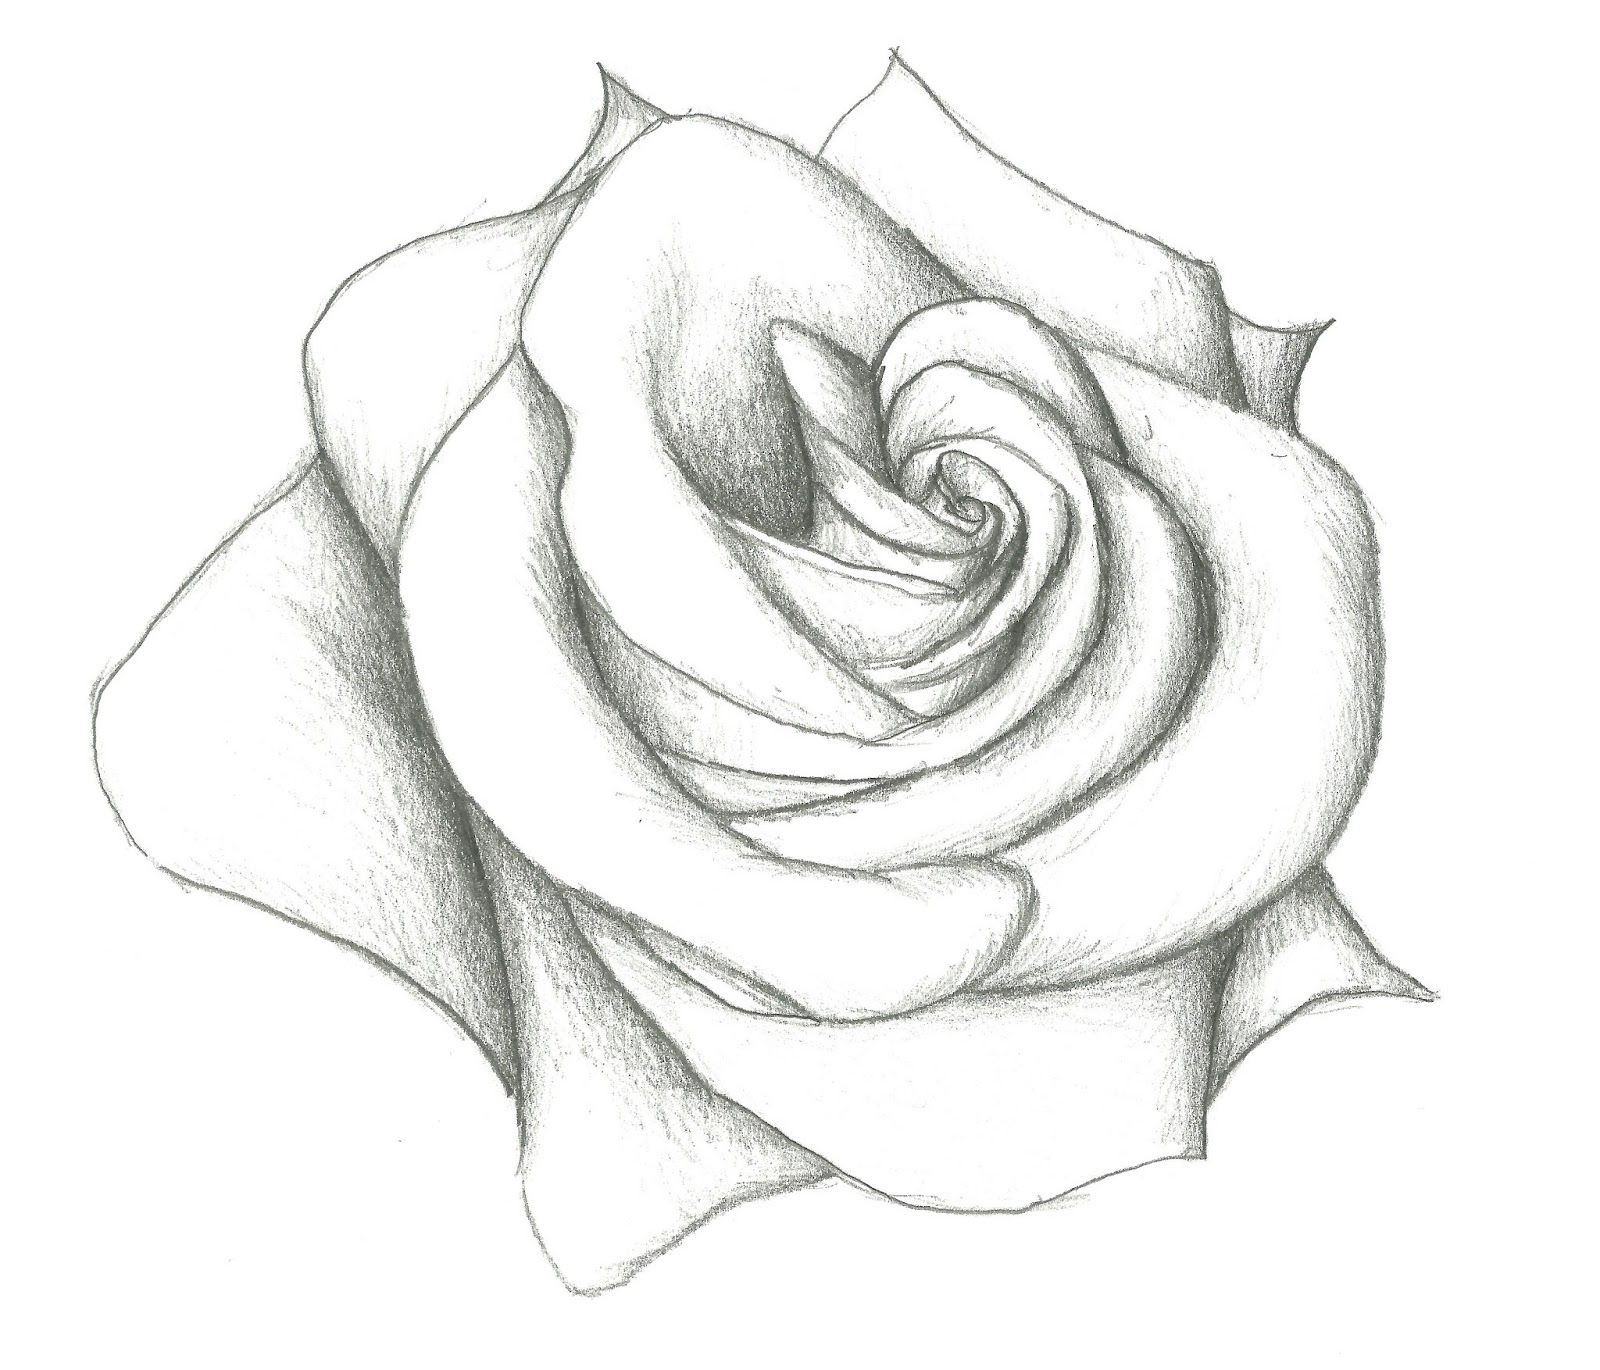 drawn rose narco penantly co